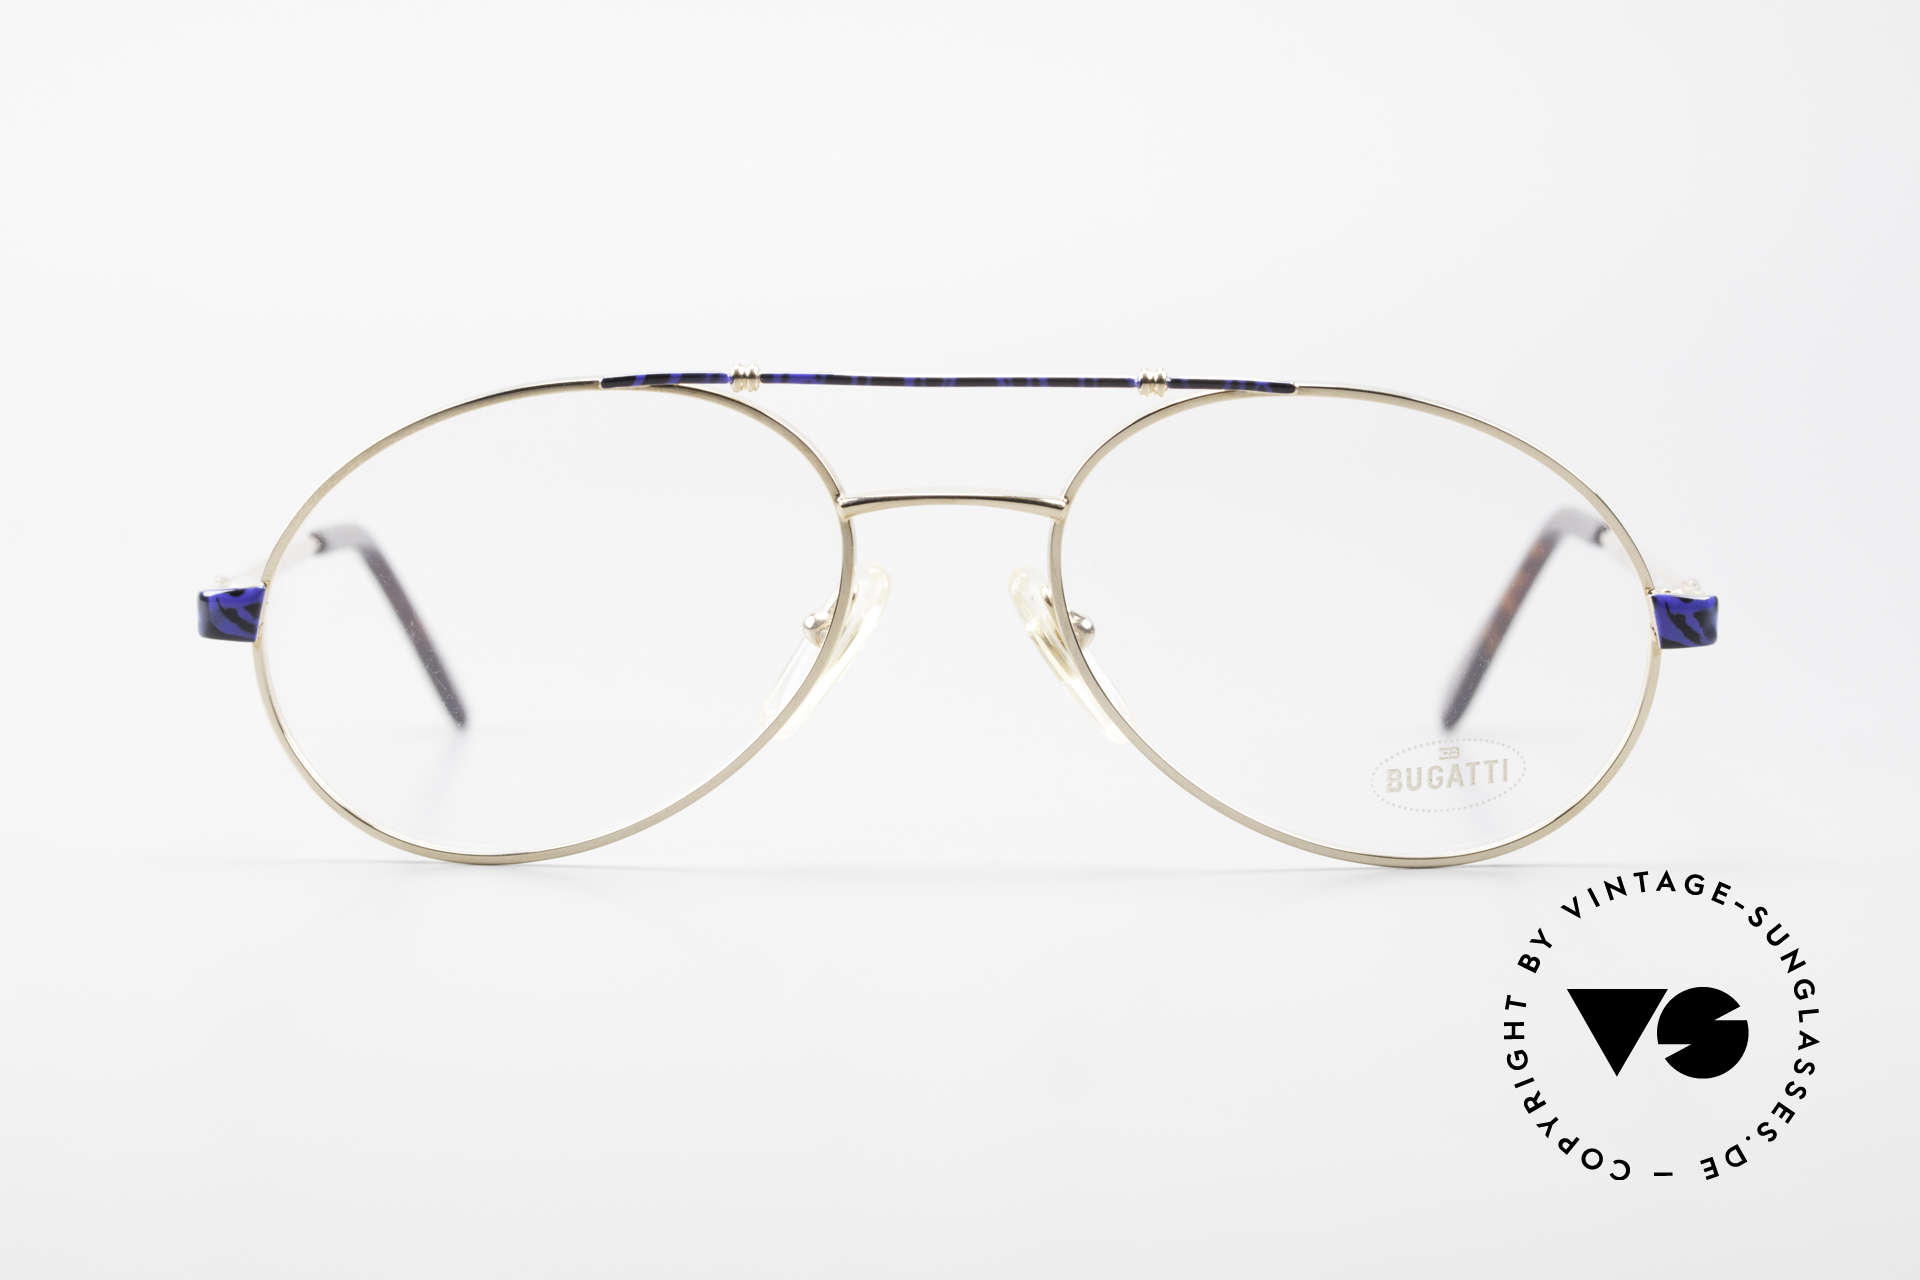 Bugatti 14818 Gold Plated Luxury Eyeglasses, legendary 'tear drop' design by Bugatti of the 80s, Made for Men